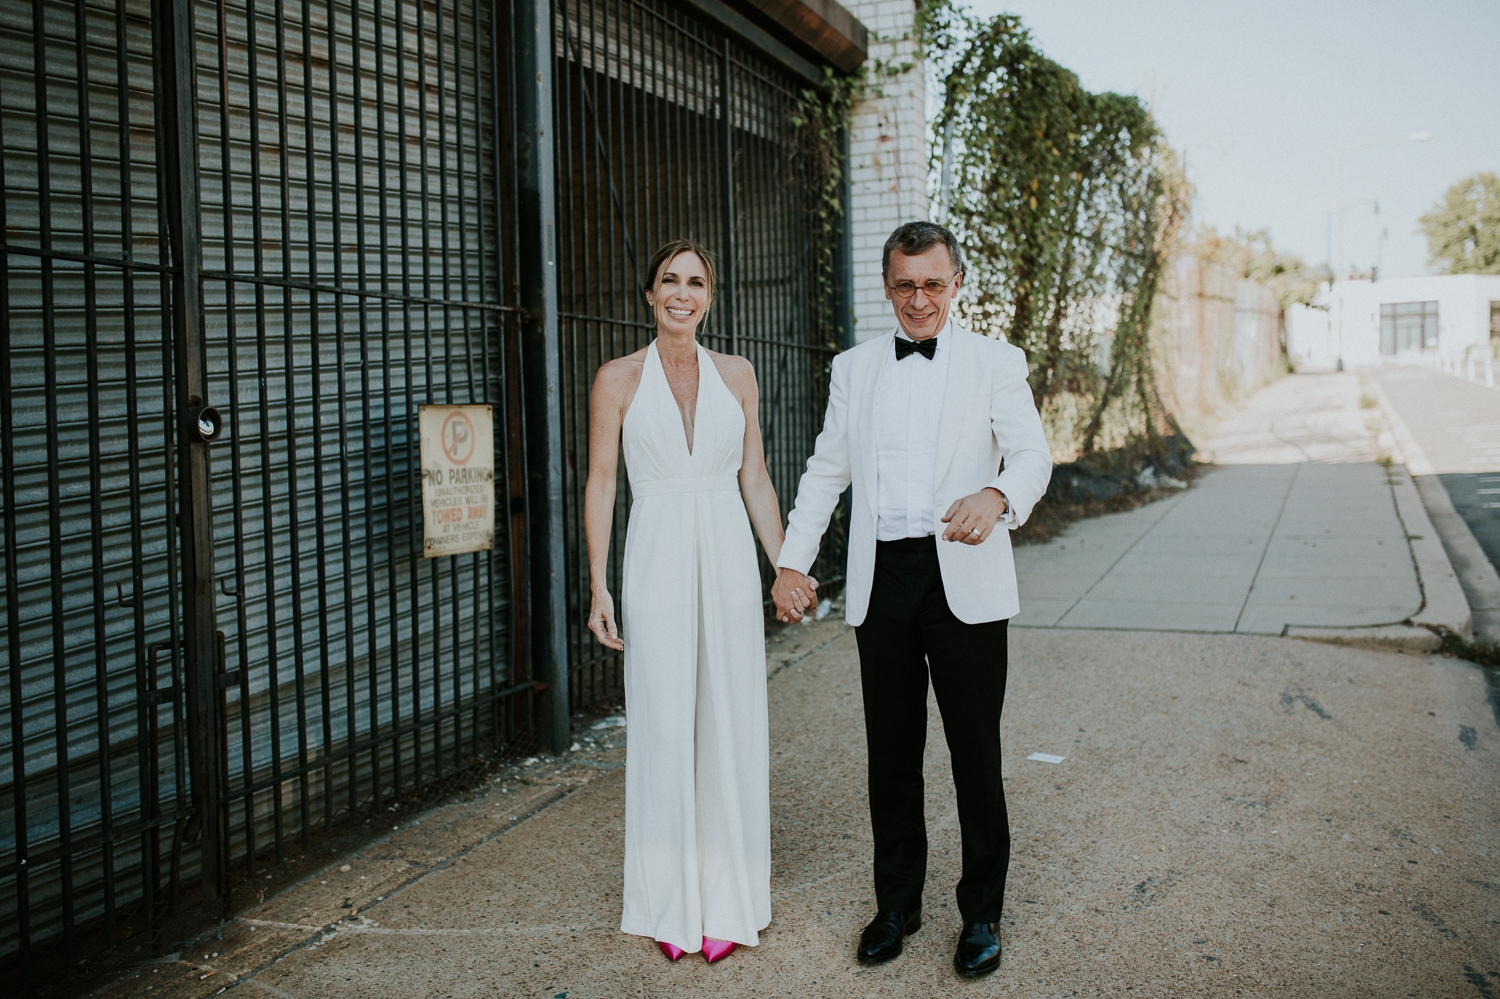 washington-dc-union-market-wedding-elopement-photography 24.jpg